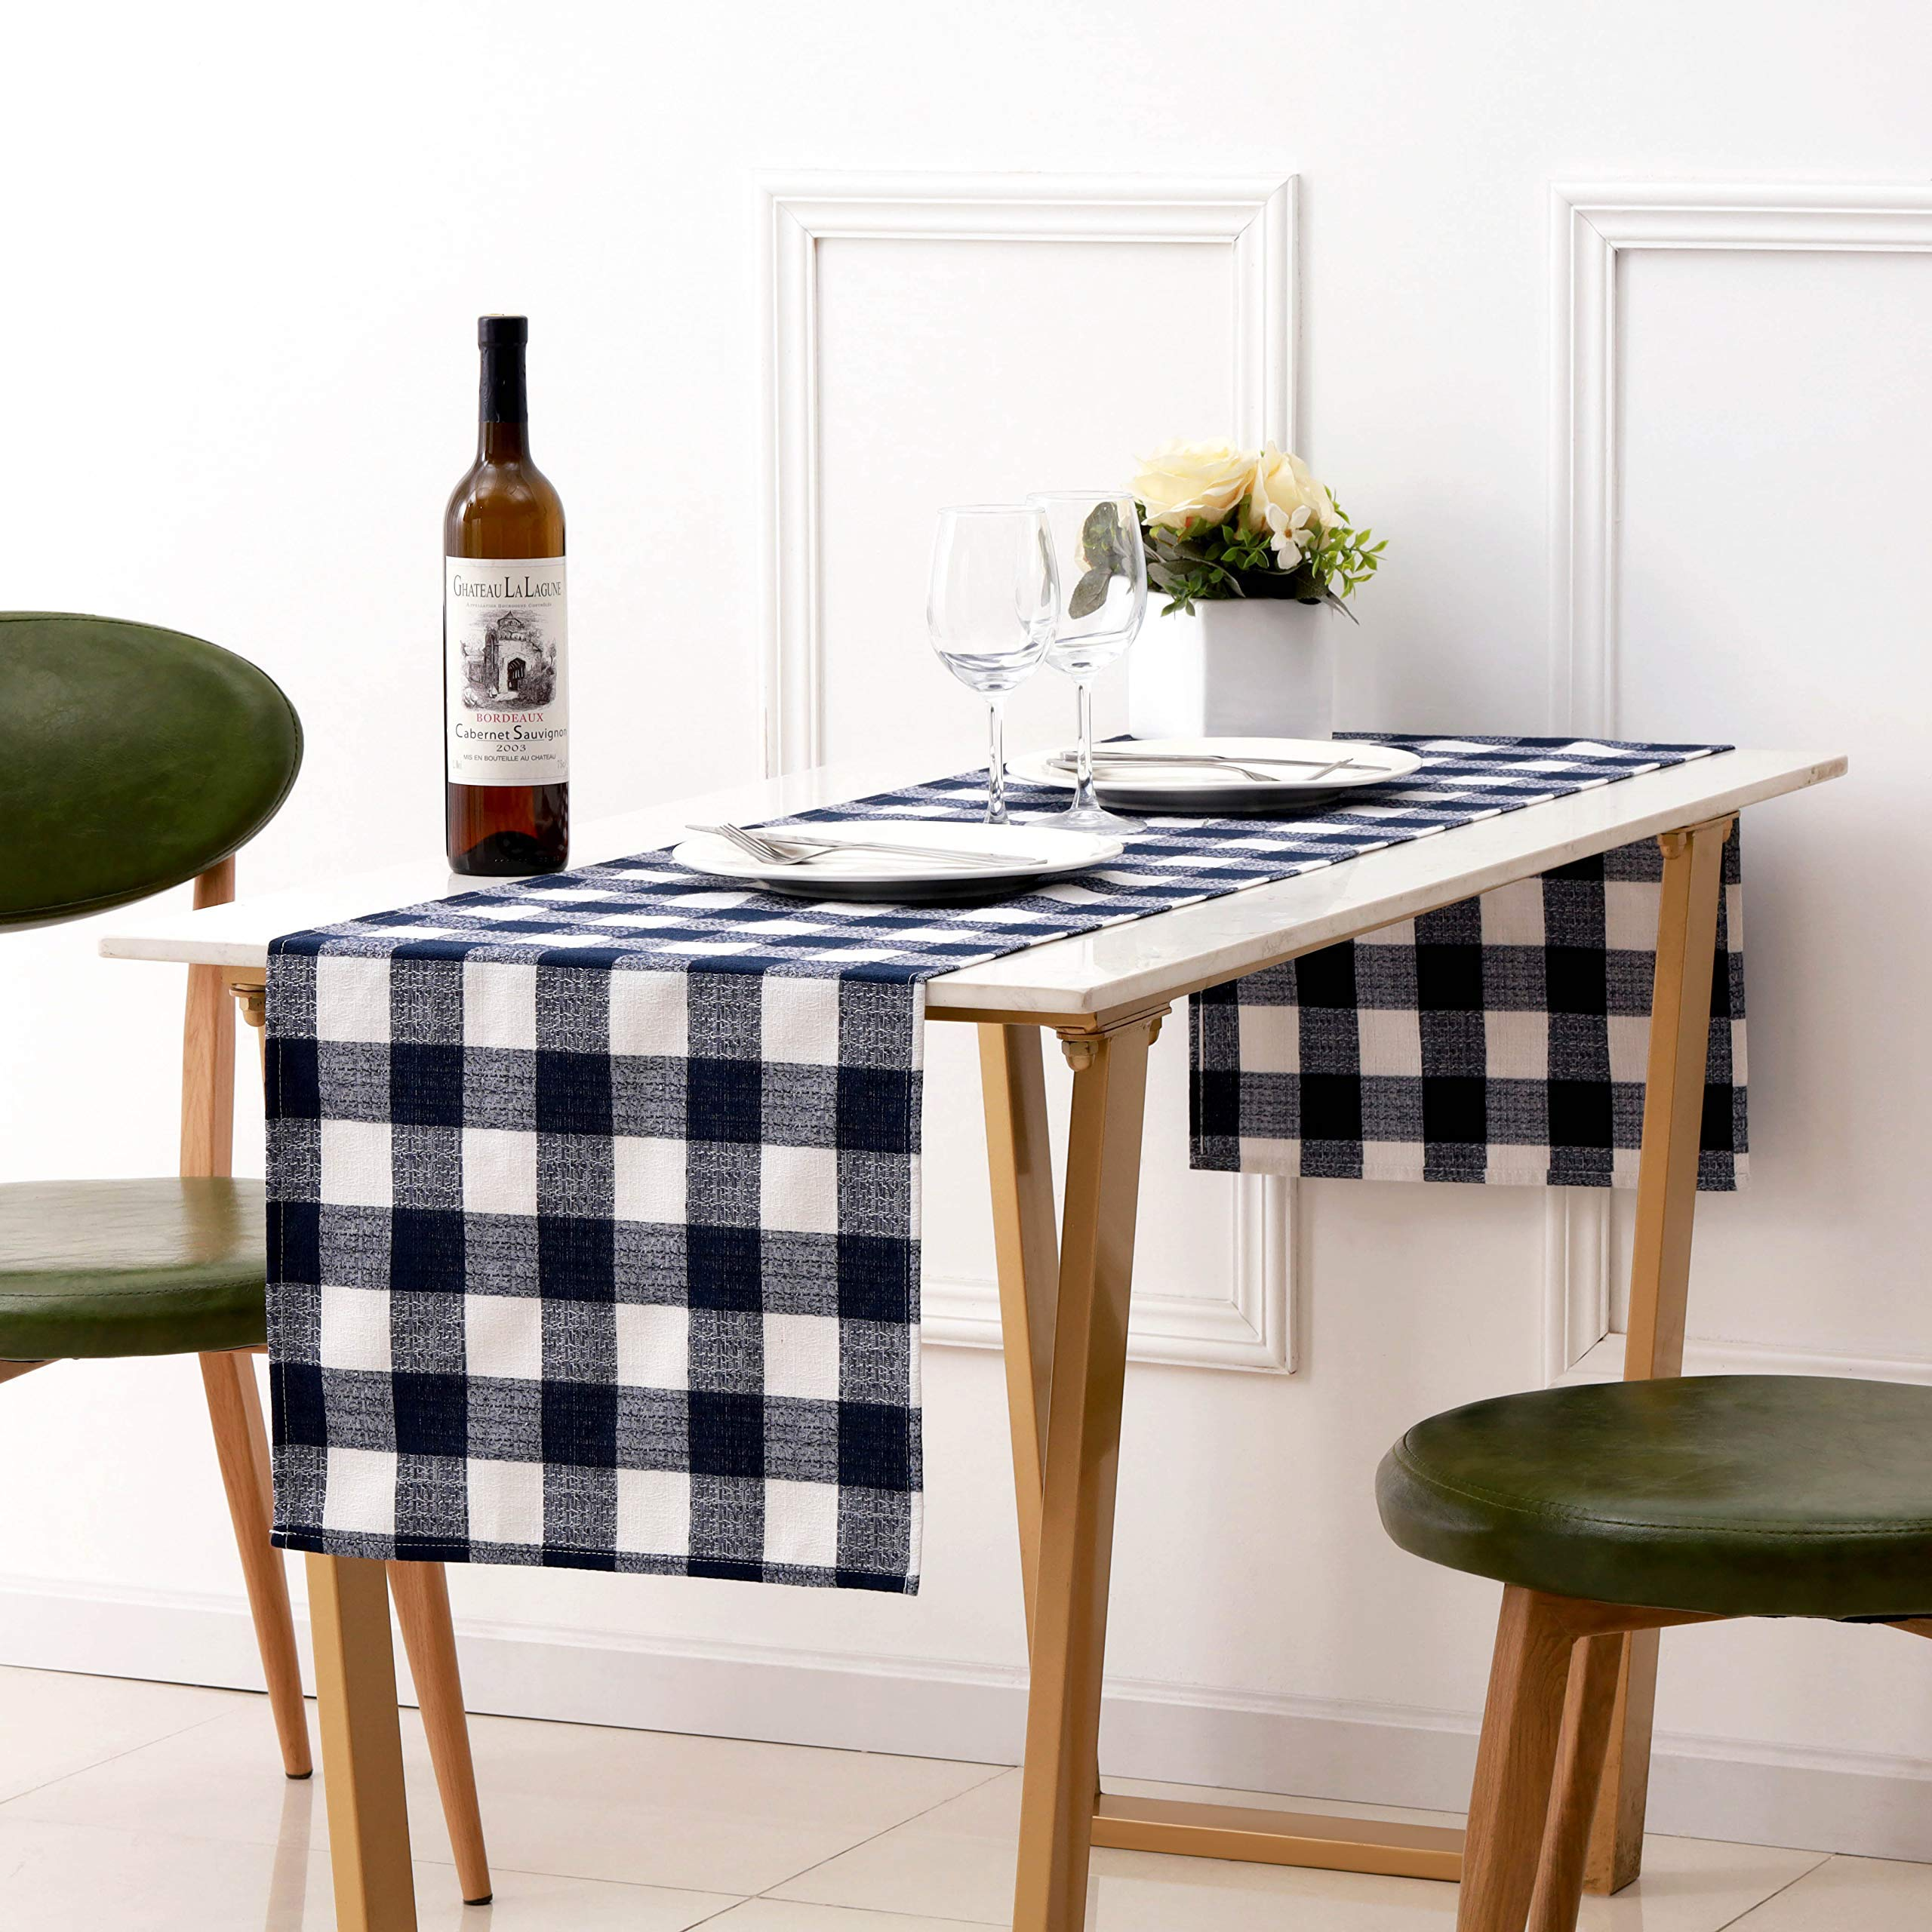 Table Runner Rectangle 16×72 Inches HARORBAY Plaid Cotton Linen Table Runners Washable